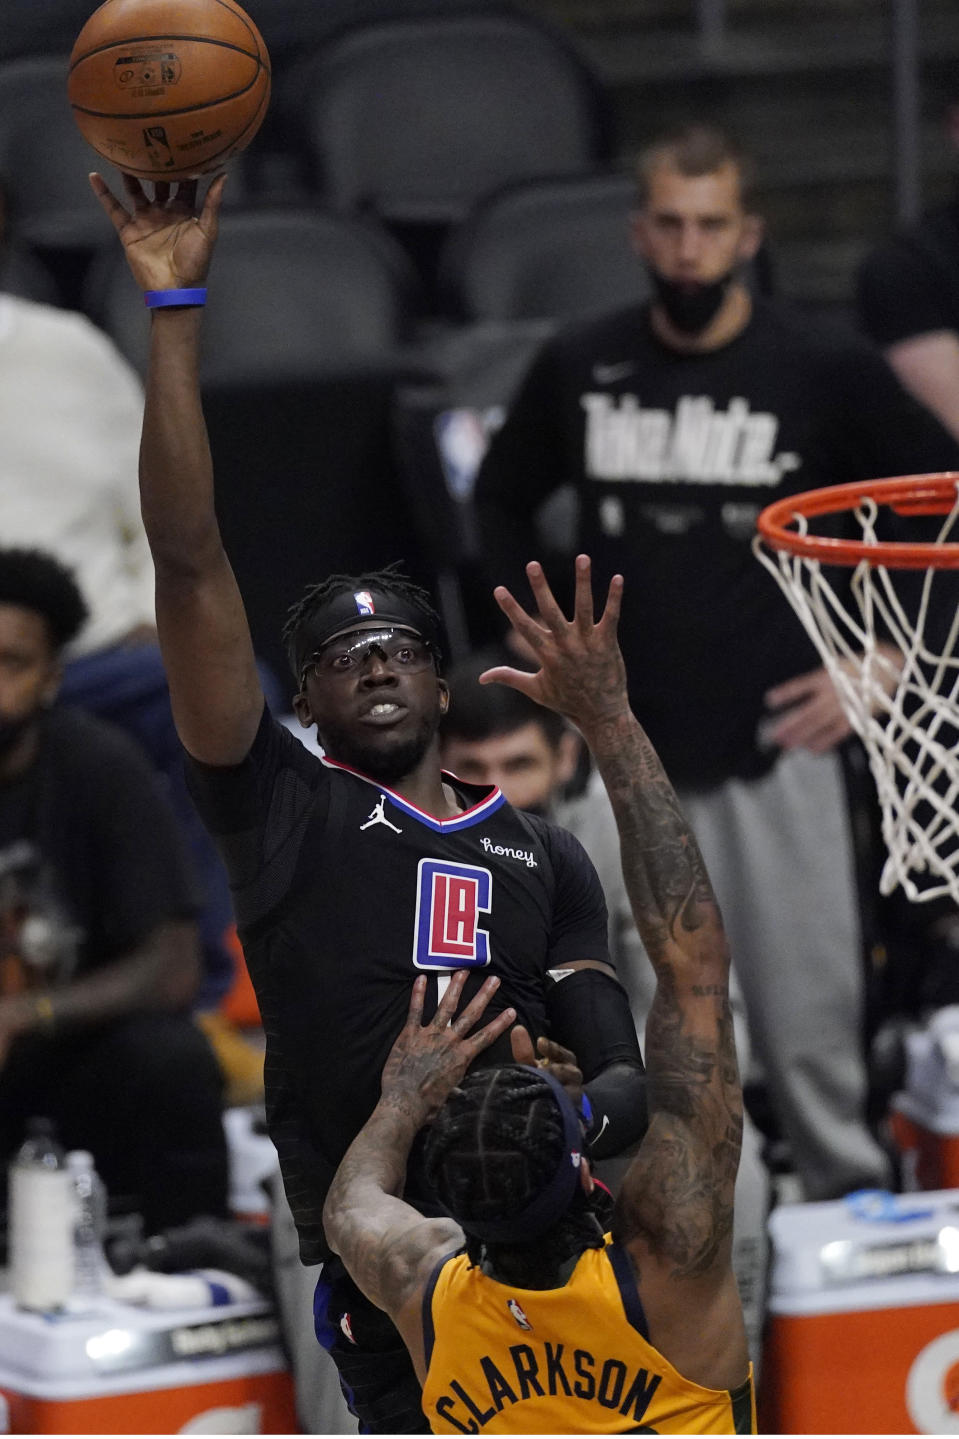 Los Angeles Clippers guard Reggie Jackson, left, shoots as Utah Jazz guard Jordan Clarkson defends during the first half in Game 4 of a second-round NBA basketball playoff series Monday, June 14, 2021, in Los Angeles. (AP Photo/Mark J. Terrill)